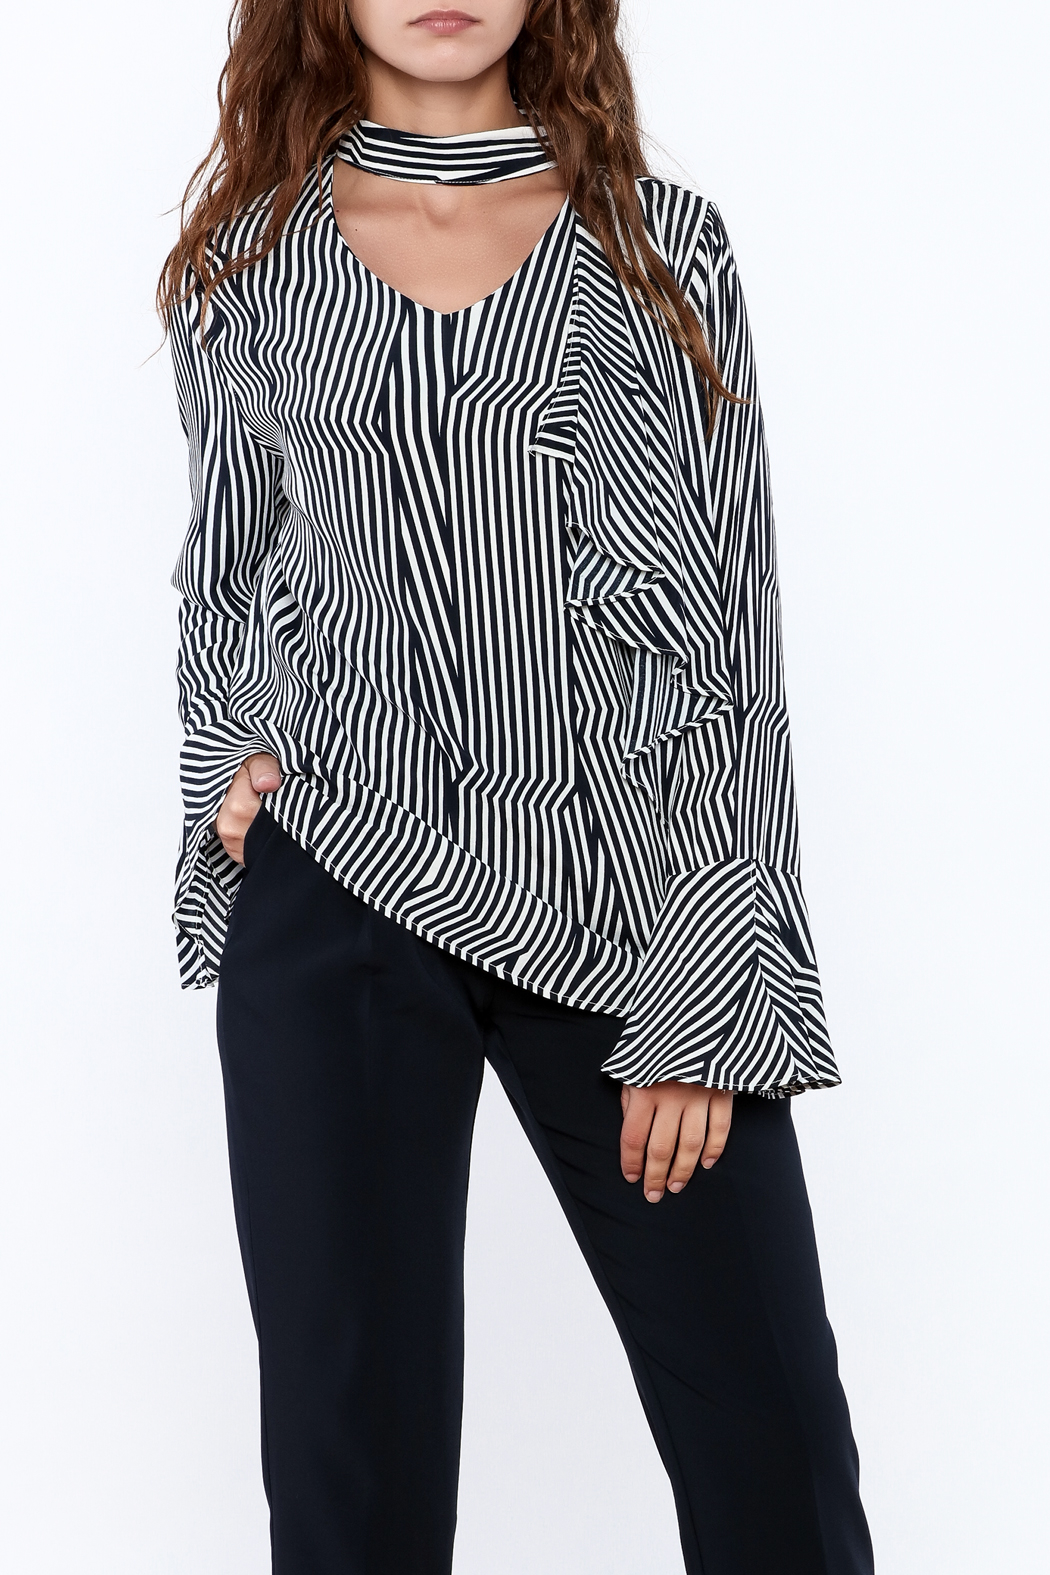 Pinkyotto Crooked Stripe Print Top - Main Image